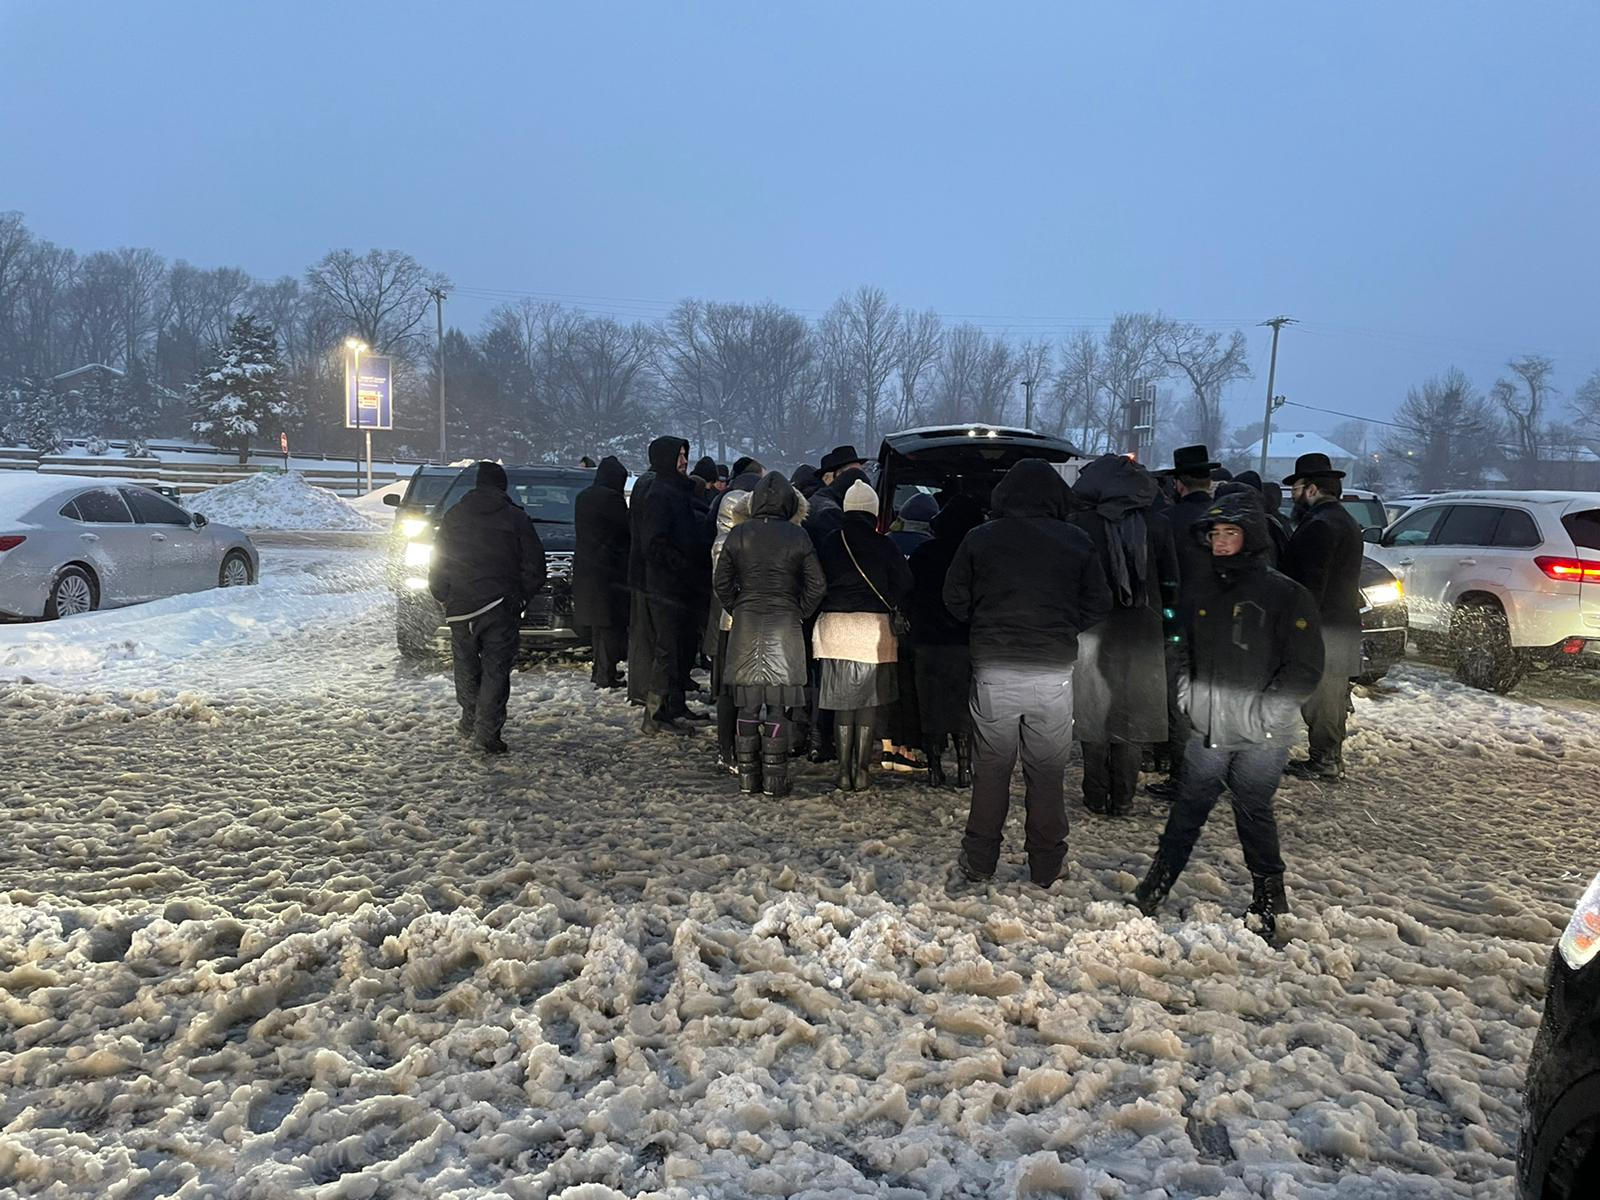 From Sorrow to Joy, Misaskim and Hatzolah Air Join Forces to Brave the Snow 2